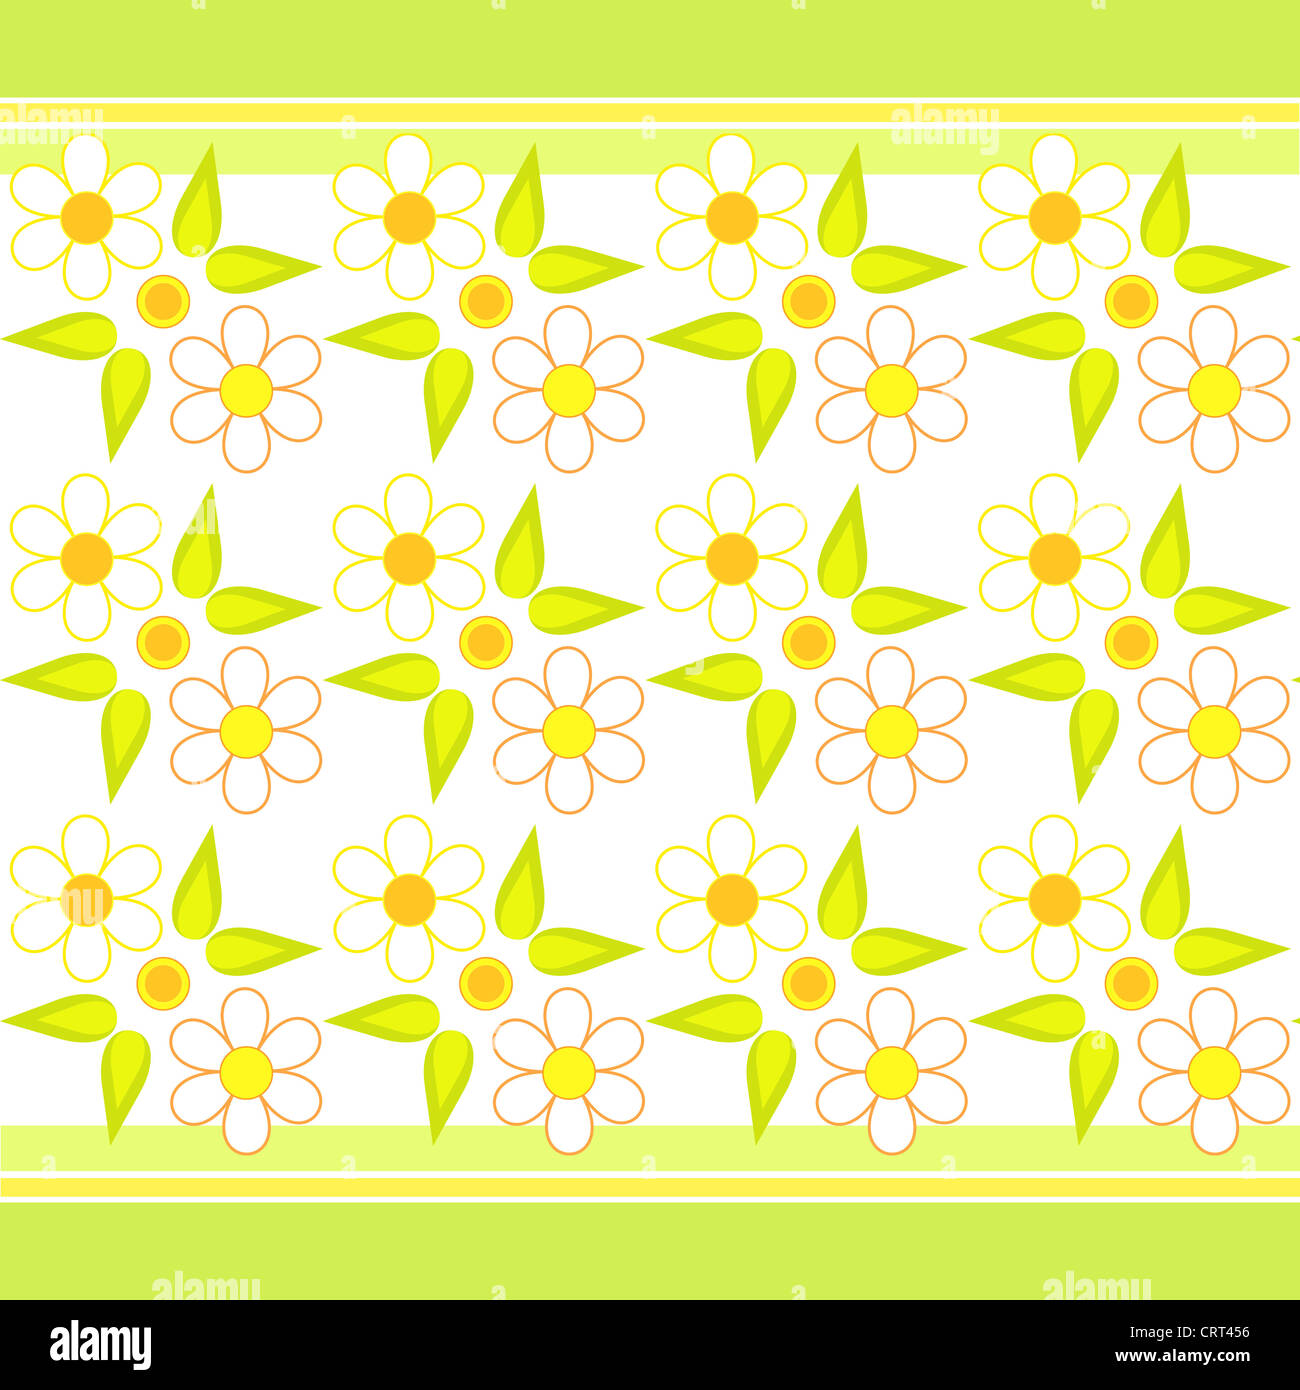 Flowers and stripes pattern in yellow and green Stock Photo